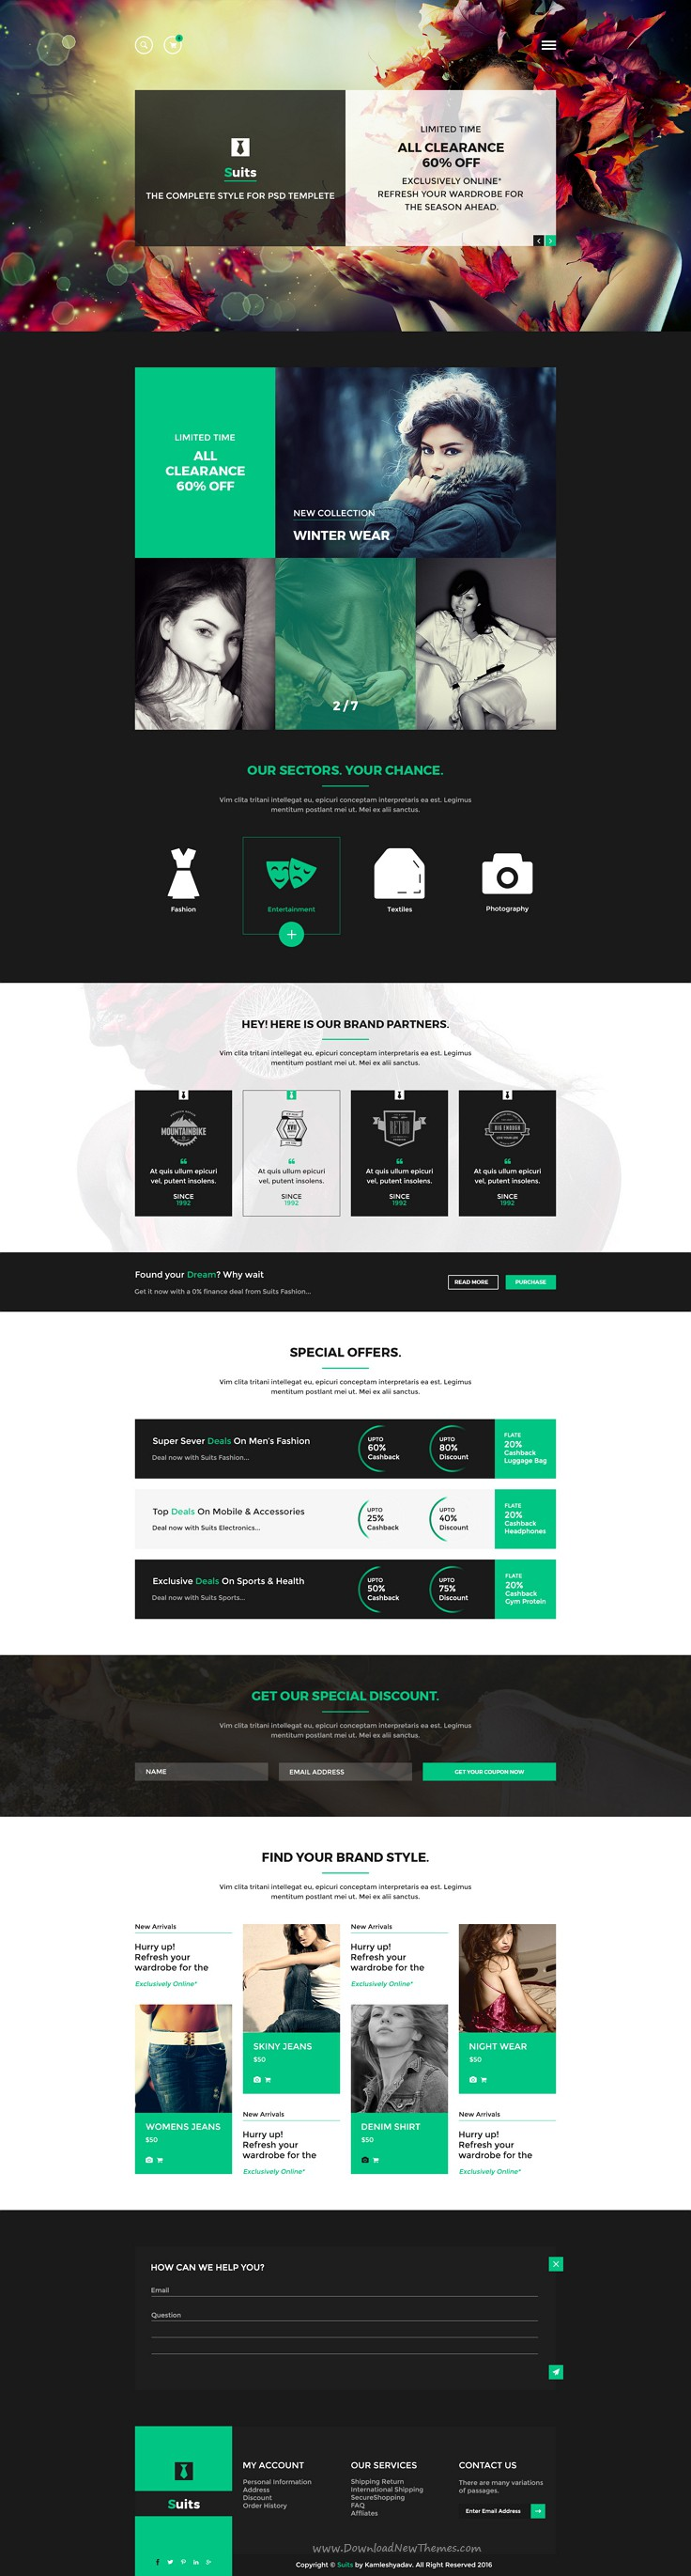 Suits - Business Portfolio Psd Template | Psd templates, eCommerce ...